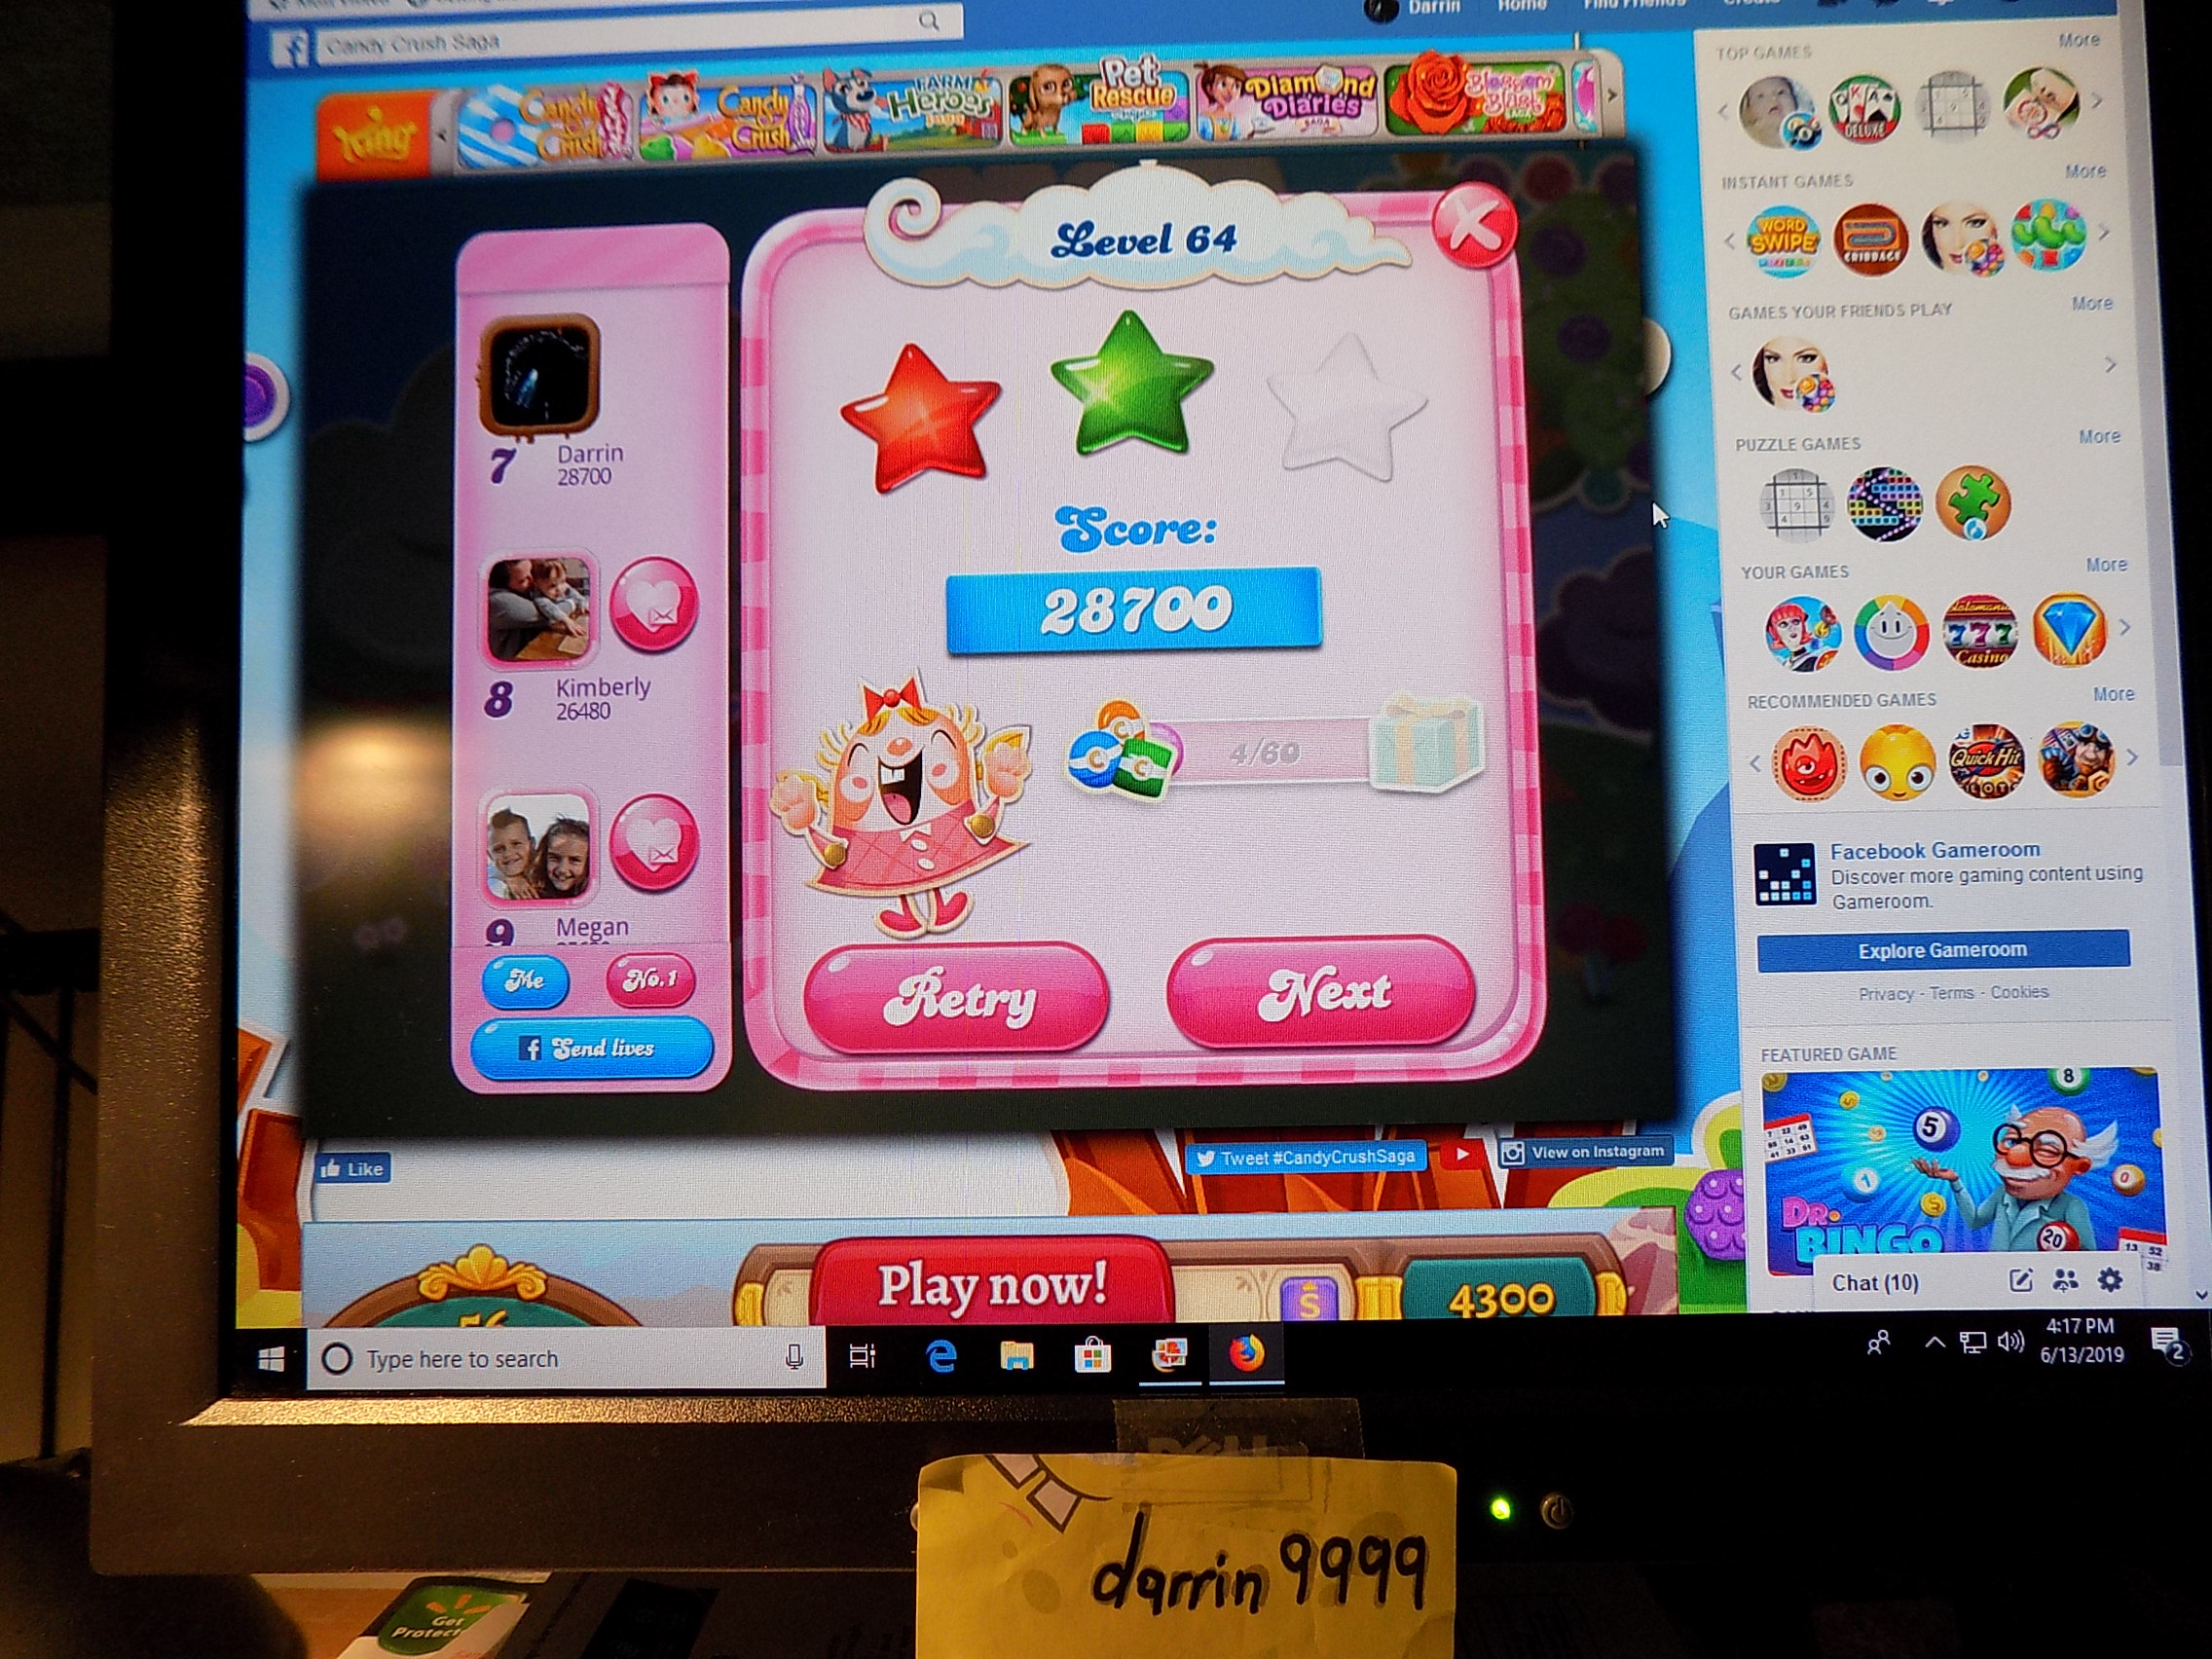 darrin9999: Candy Crush Saga: Level 064 (Web) 28,700 points on 2019-06-13 17:32:27